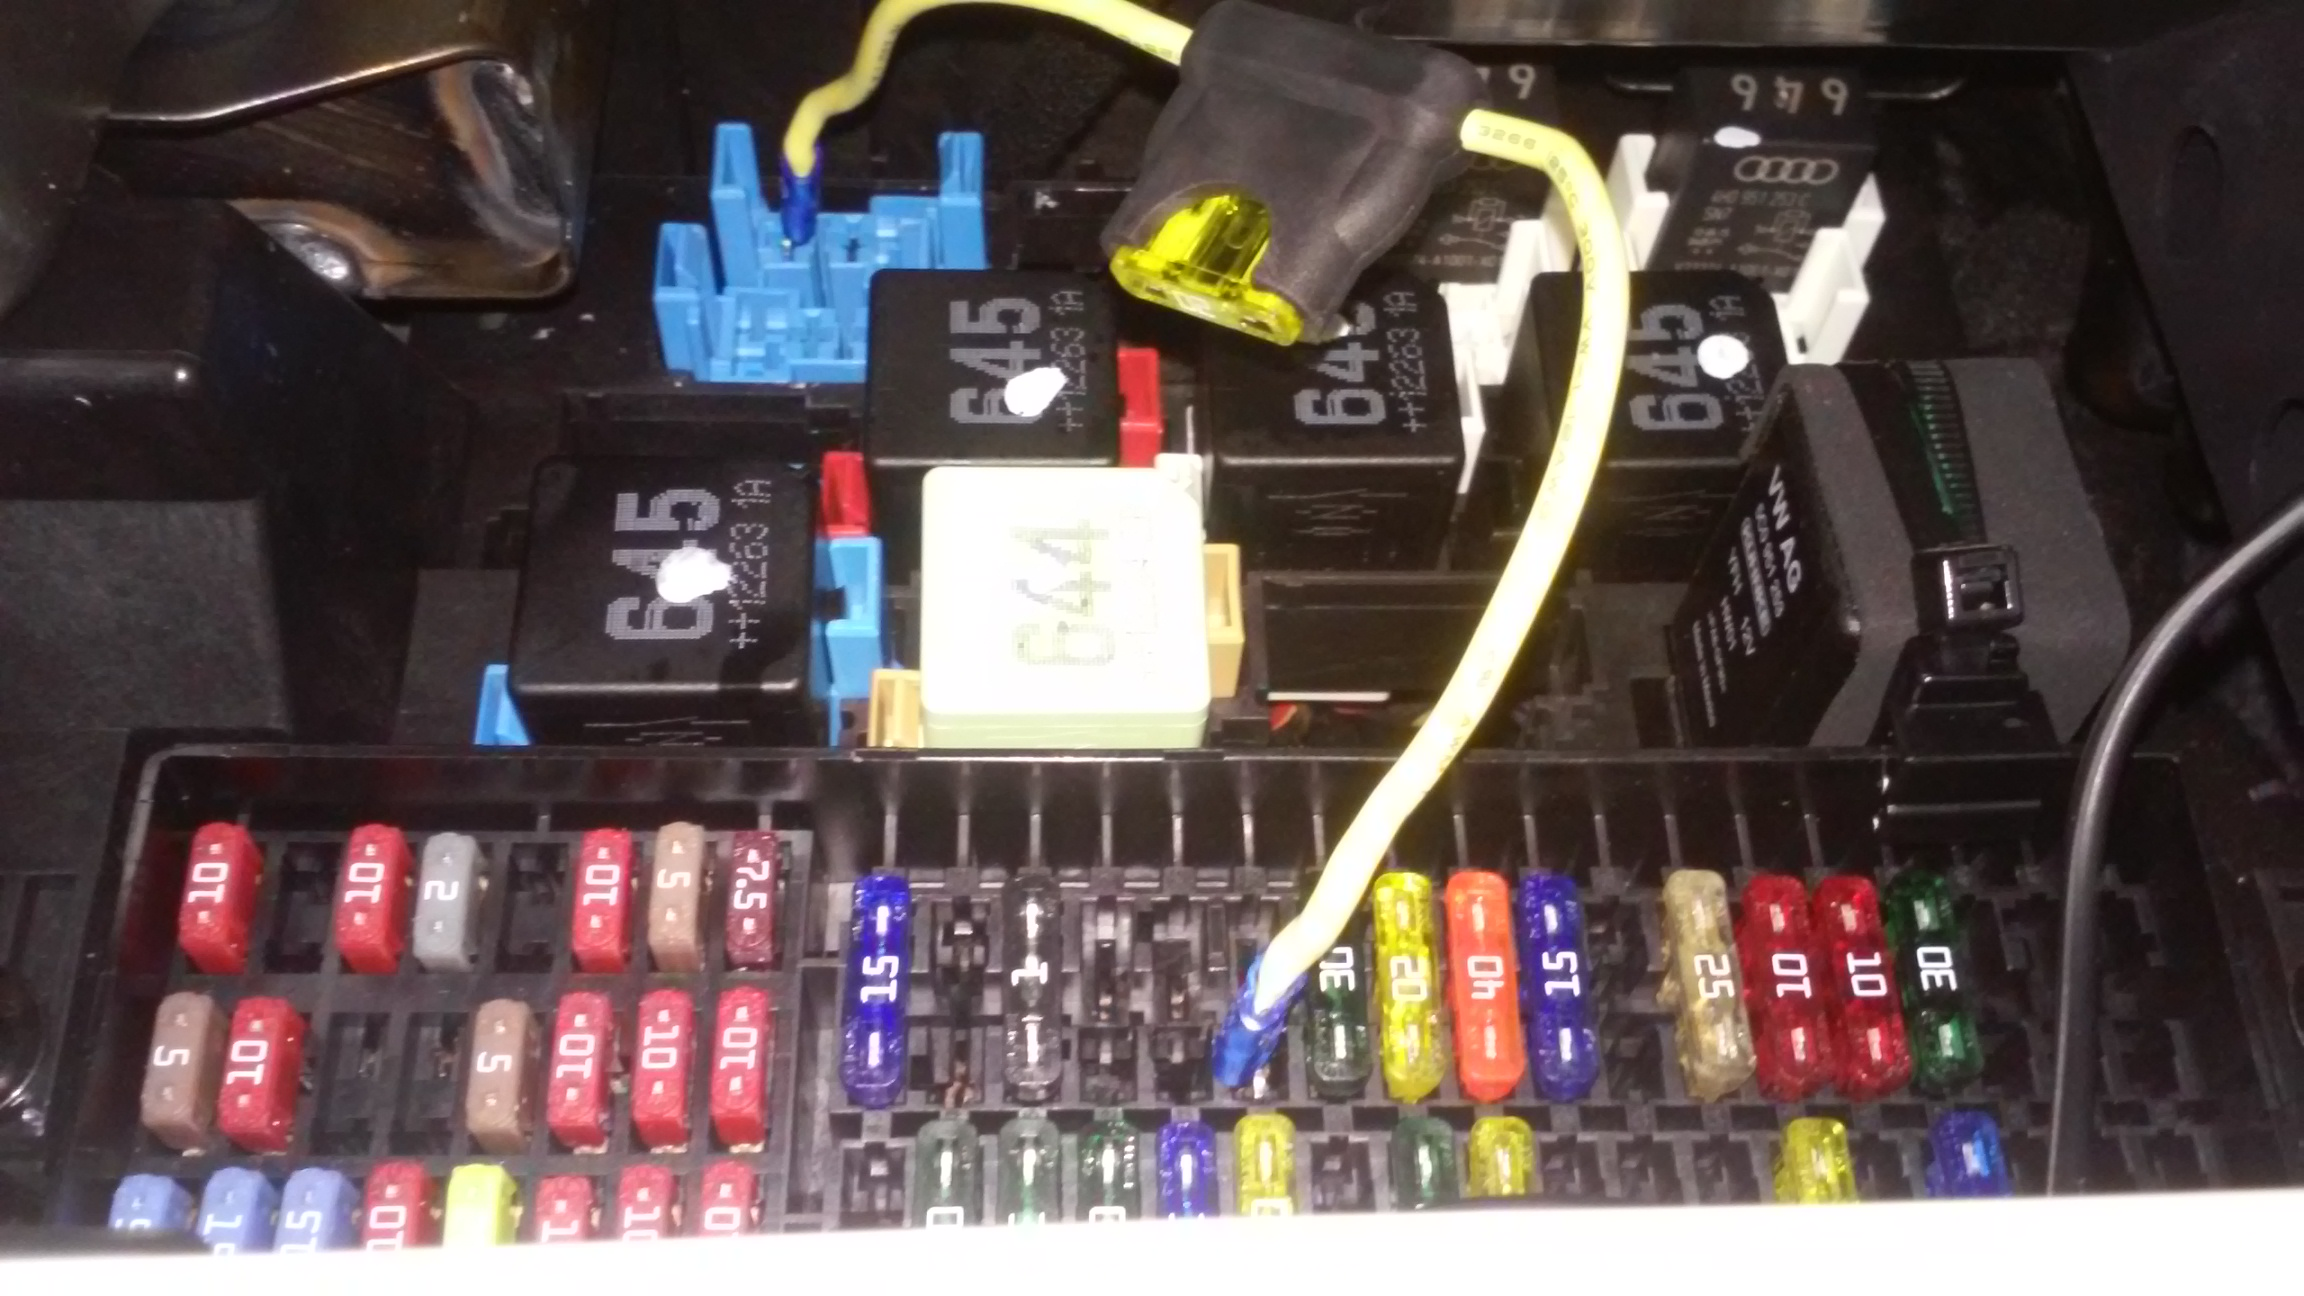 [SCHEMATICS_4FR]  GY_0436] Fuse Box Diagram Together With 2014 Vw Jetta Cigarette Lighter Fuse  Wiring Diagram | 2014 Jetta Fuse Box Lighter |  | Peted Hete Wigeg Mohammedshrine Librar Wiring 101